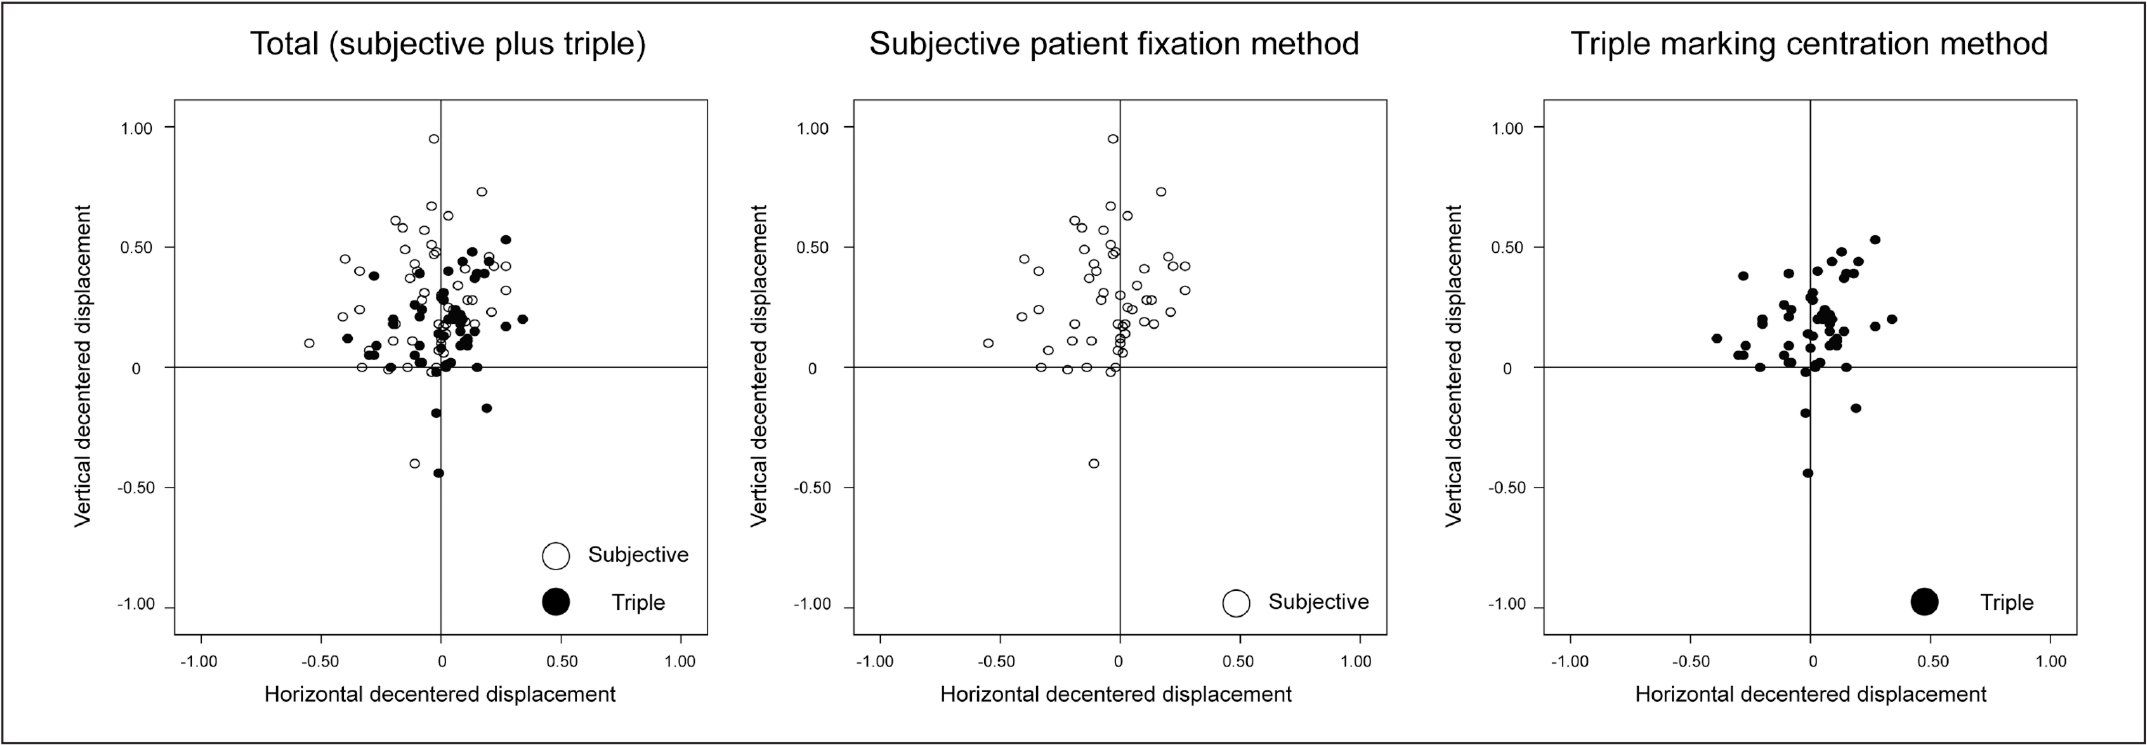 Scatterplot showing distribution of treatment centers with respect to the corneal vertex via the subjective patient fixation method or triple marking centration method. Positive vertical coordinates stand for superior displacements and negative for inferior ones. Positive horizontal coordinates stand for temporal displacements and negative for nasal ones.